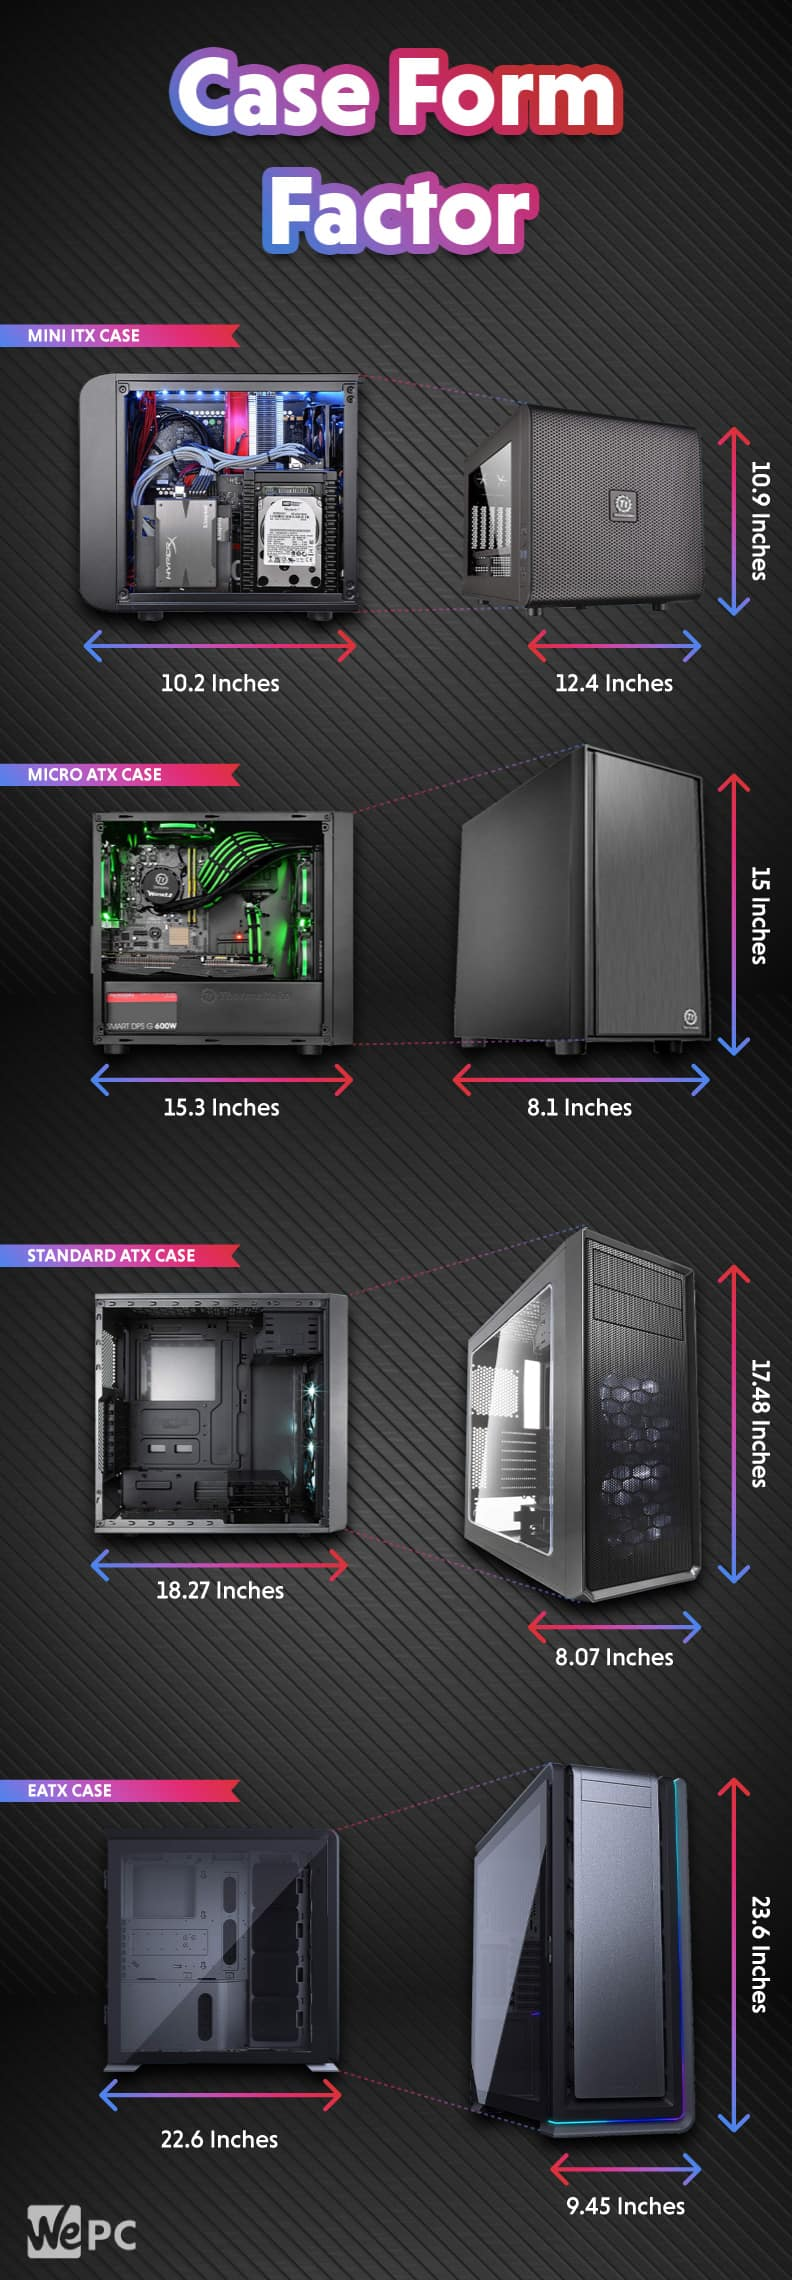 Case Form Factor